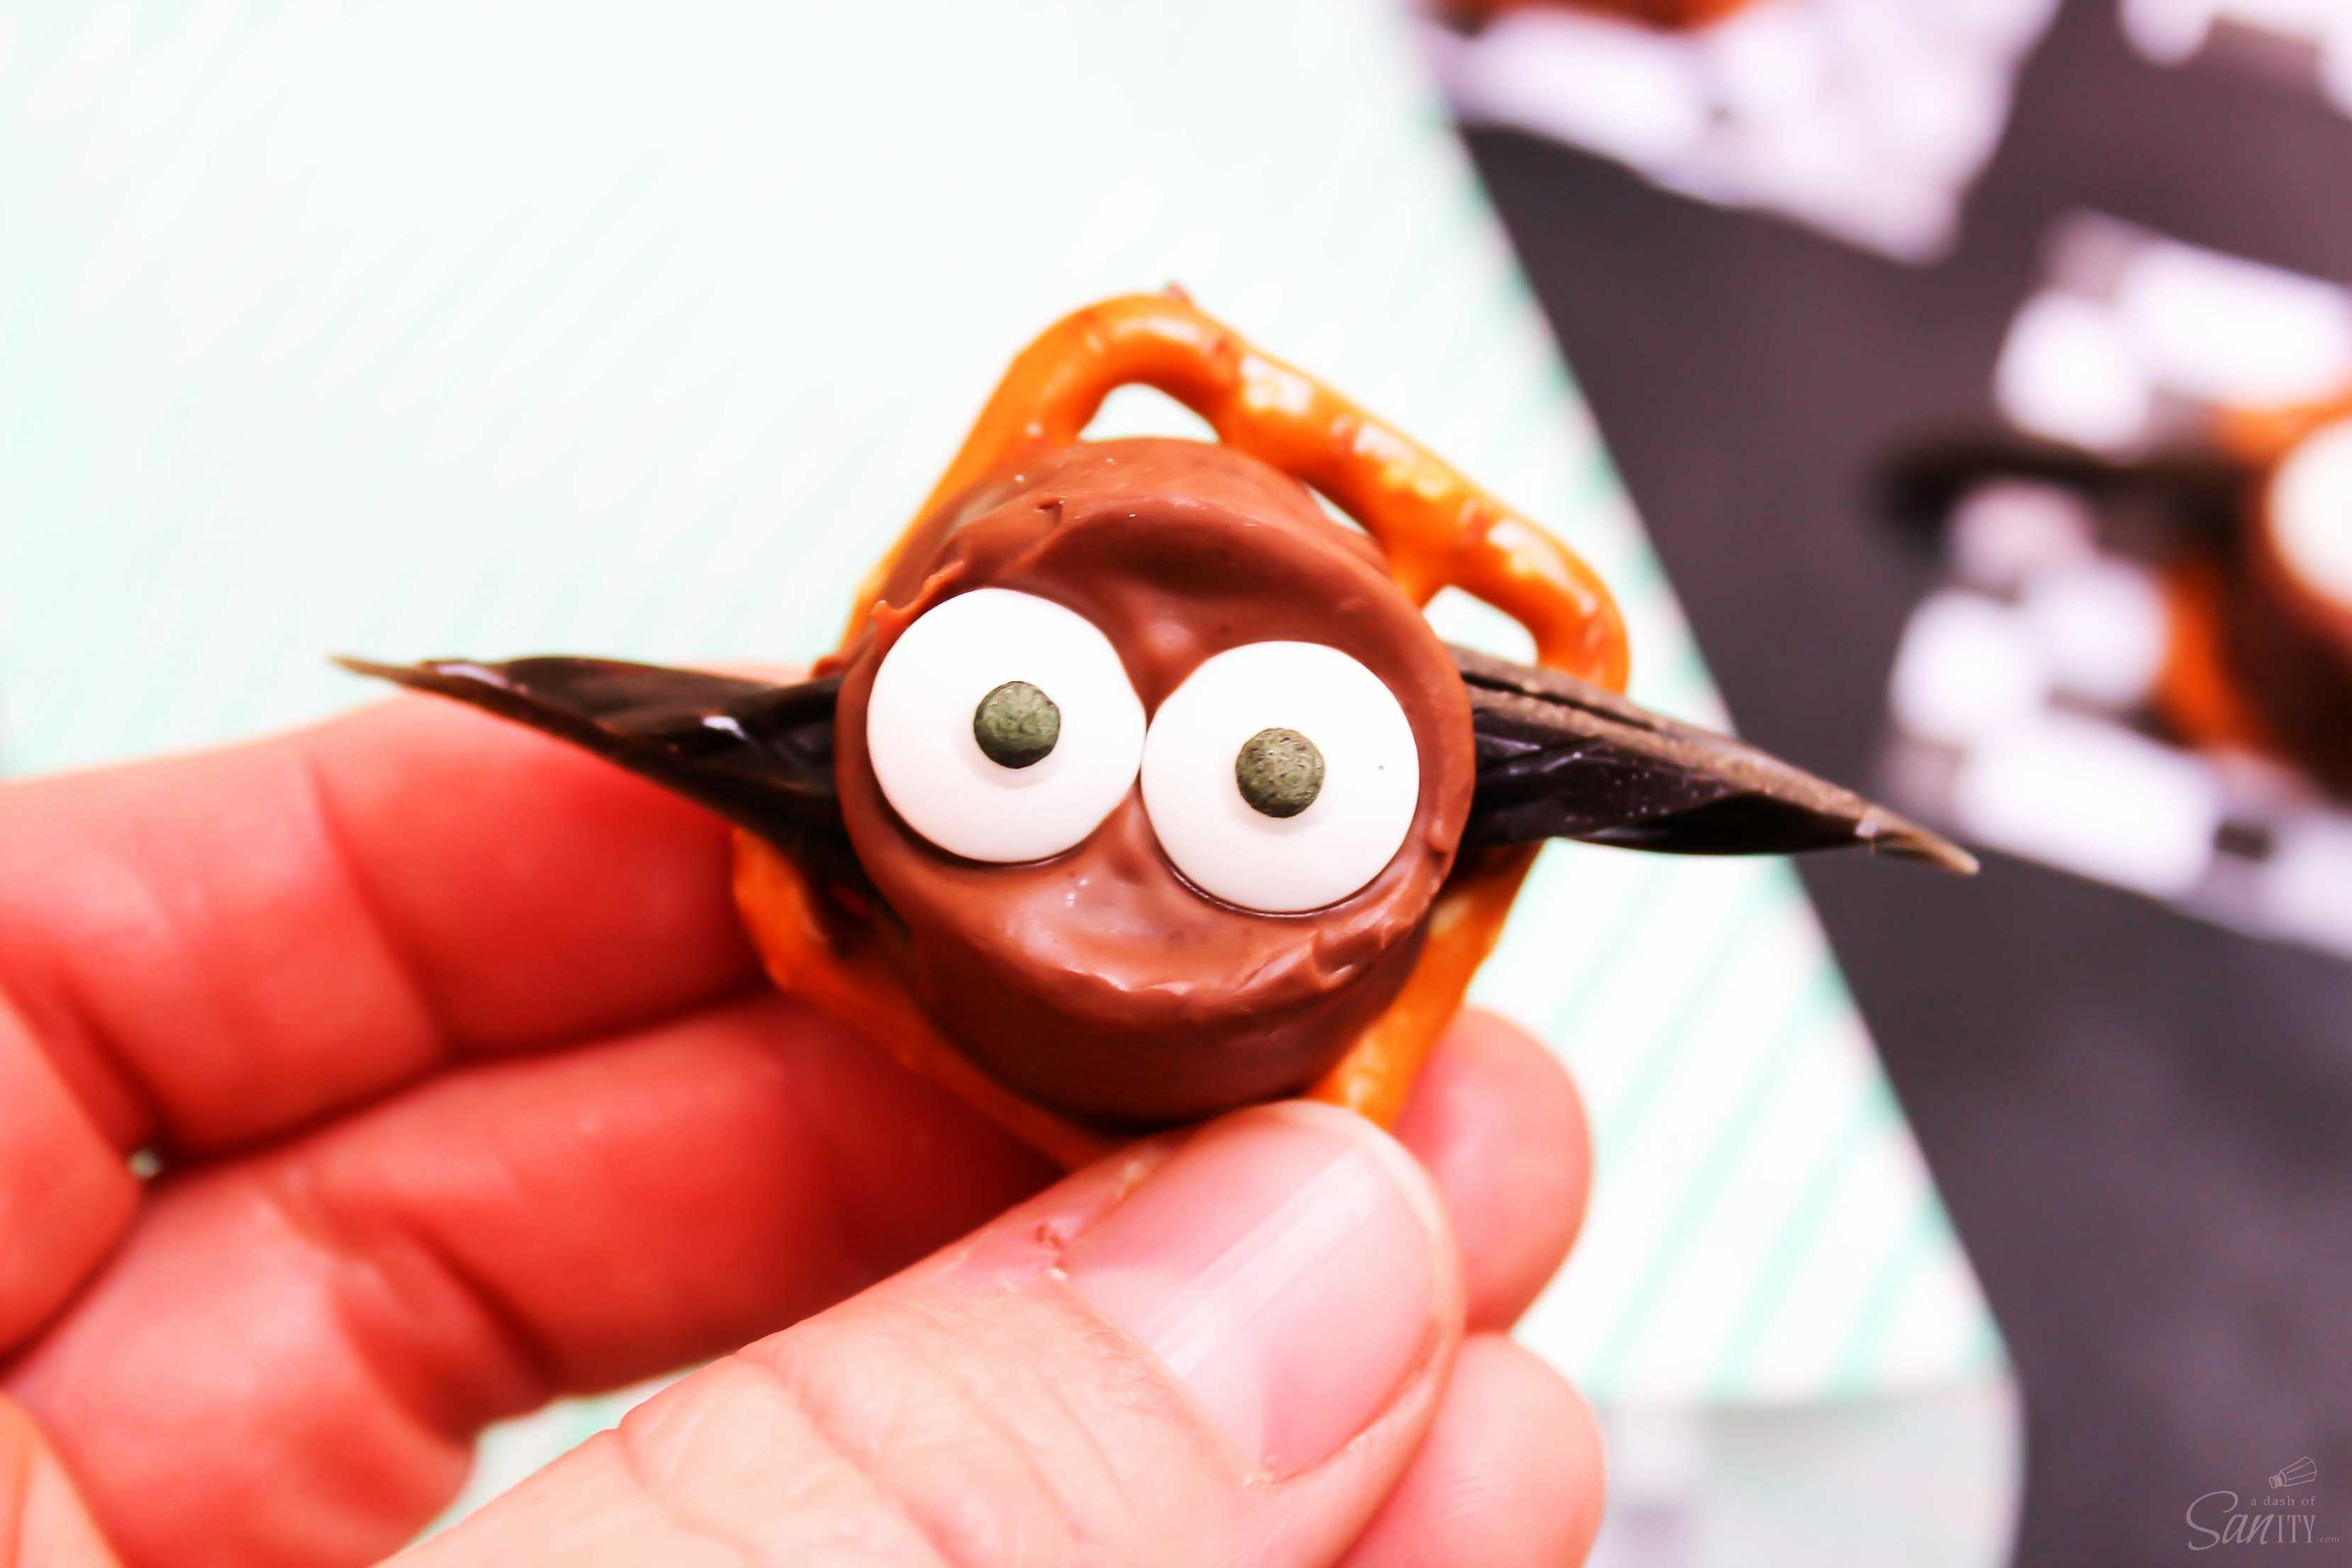 These Halloween Rolo Bats are easy to make adorable & spooky treats for this year's festivities. Get out the googly eyes, it's time to get all batty!